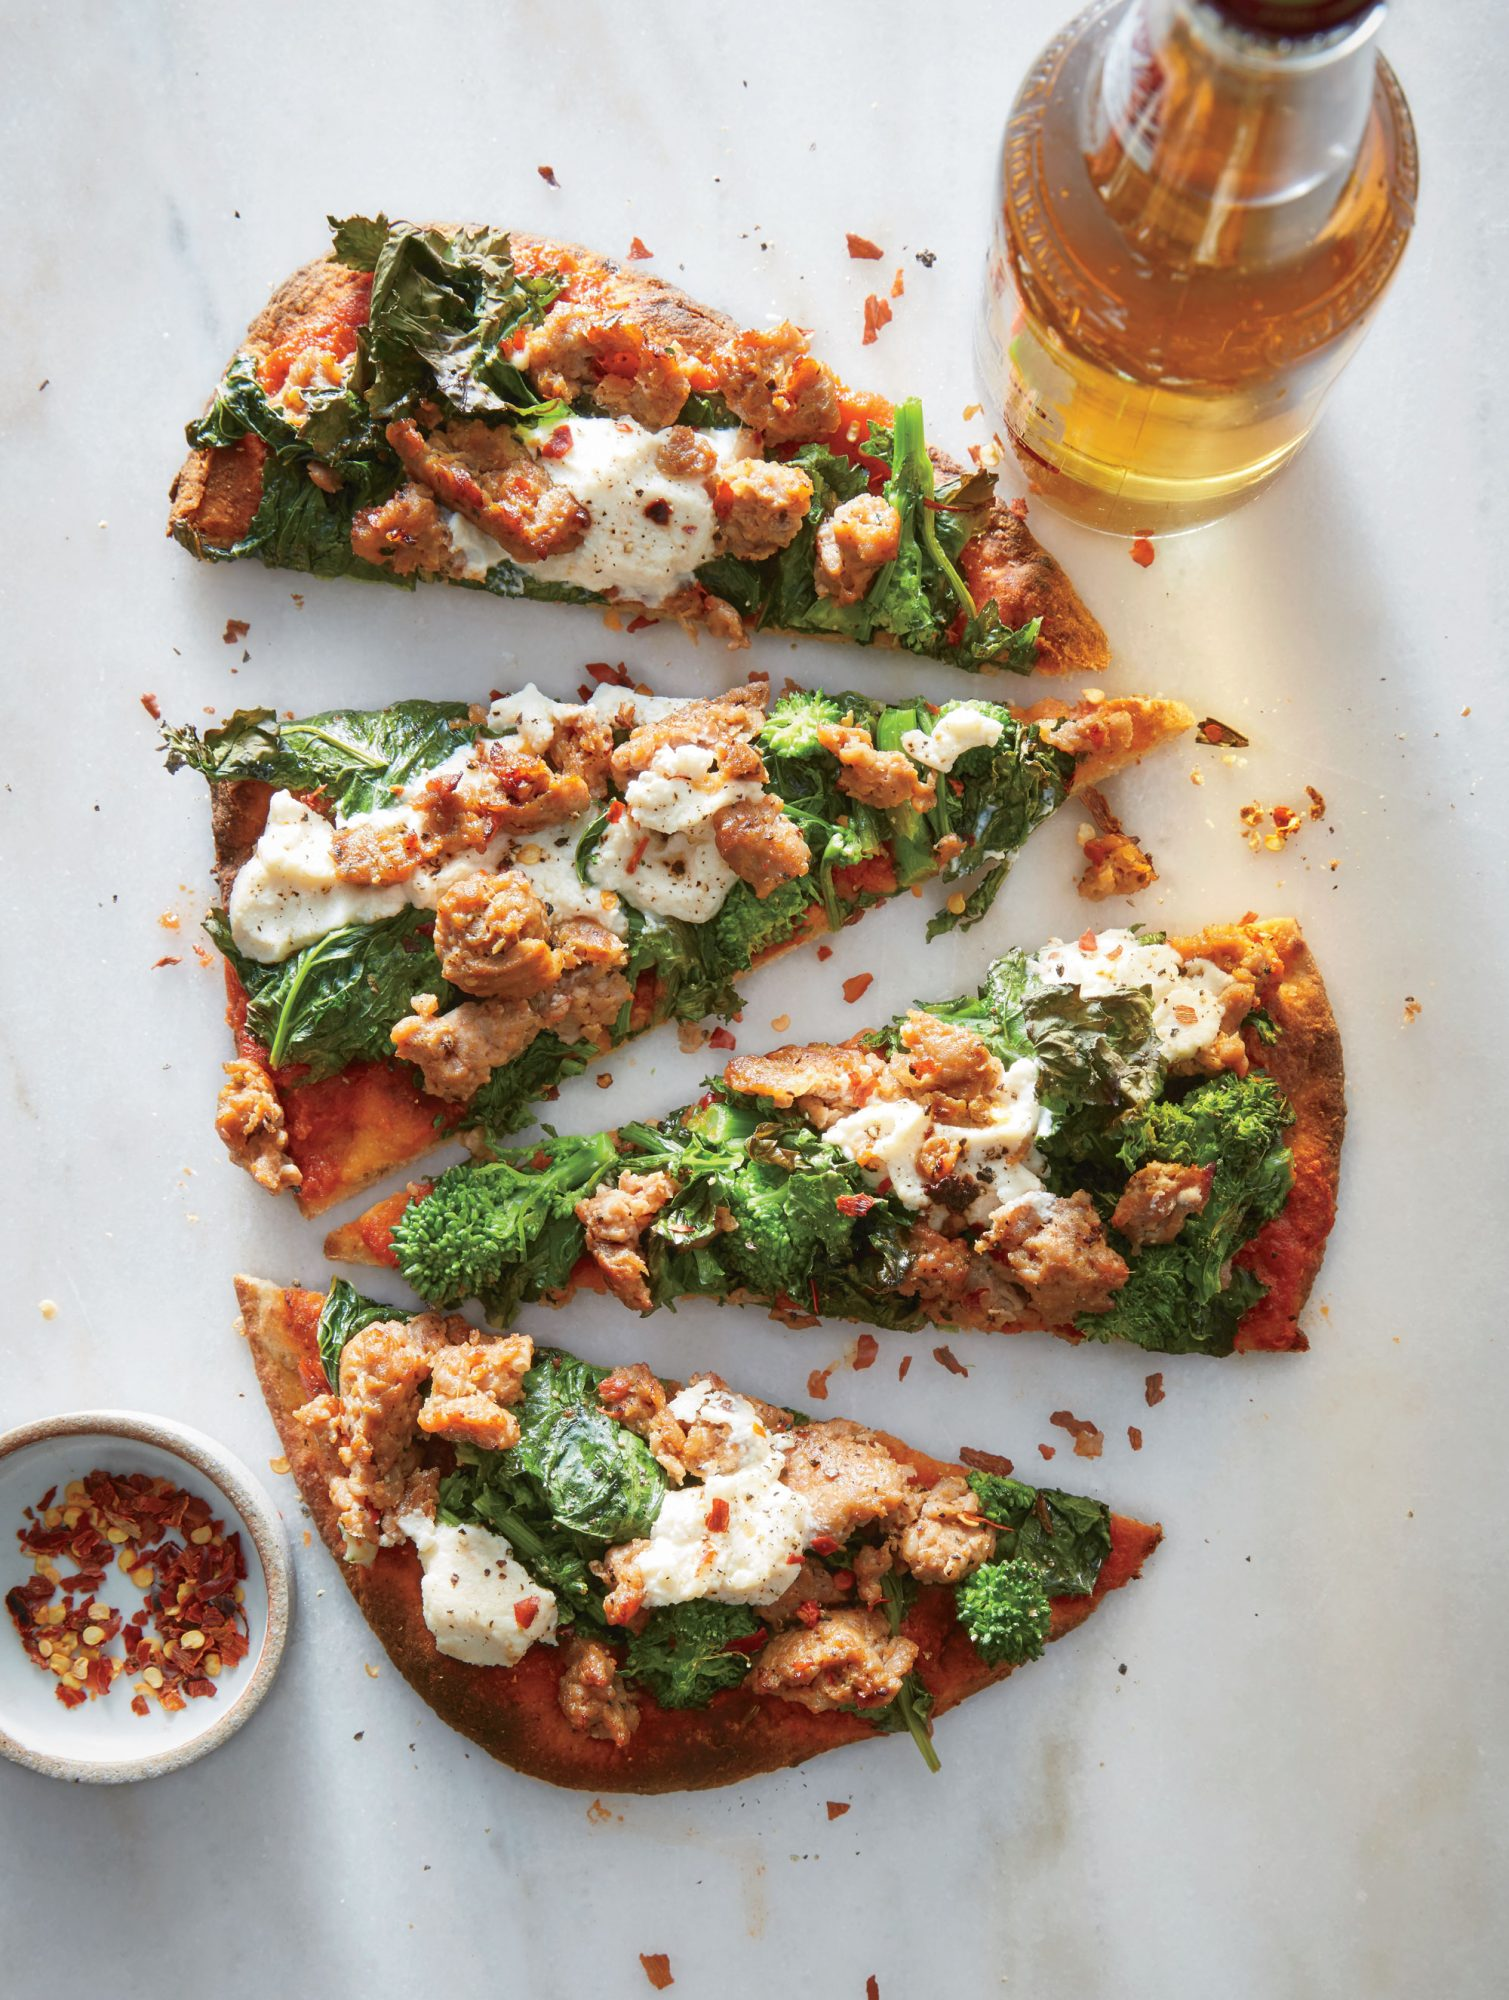 Sausage and Broccoli Rabe Flatbreads